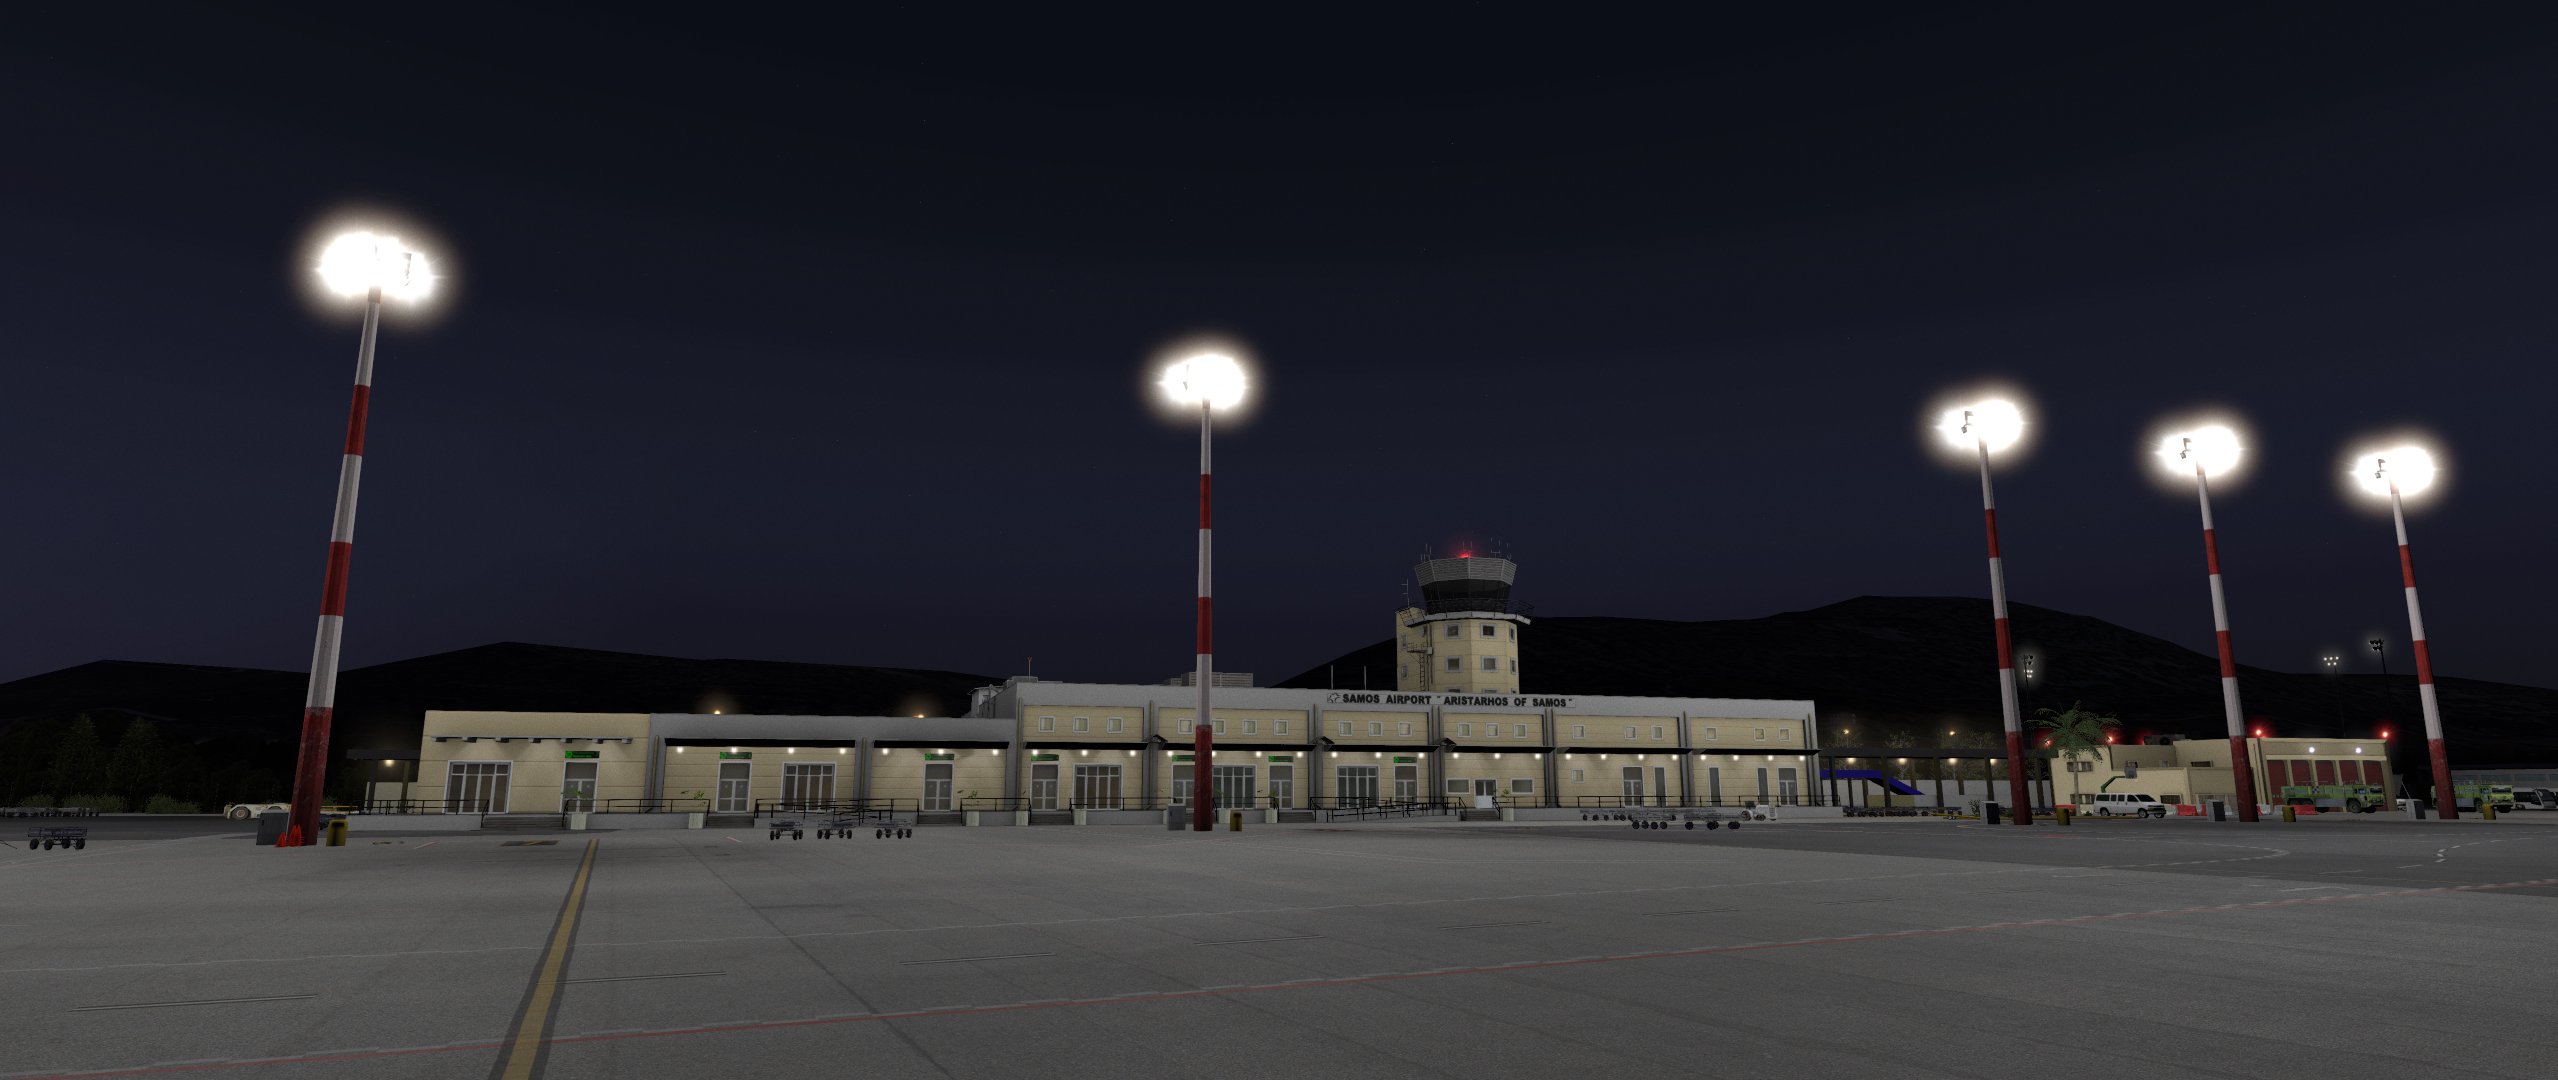 SKYLINE SIMULATIONS - LGSM – SAMOS INTERNATIONAL AIRPORT DANGEROUS AIRPORT V2 X-PLANE 11